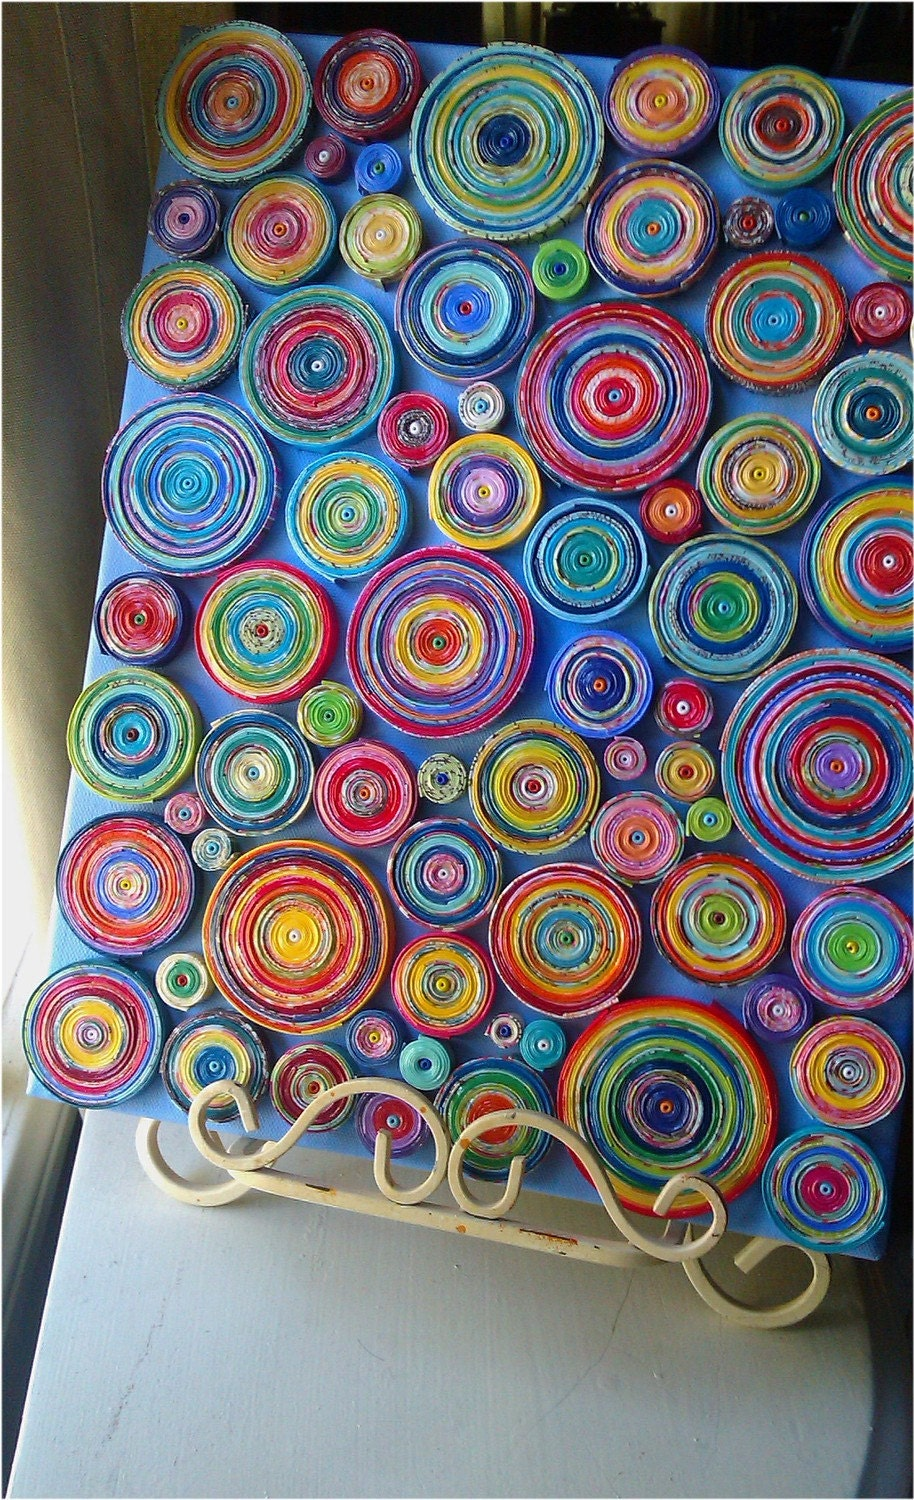 paper coils art canvas covered in coils 11x14